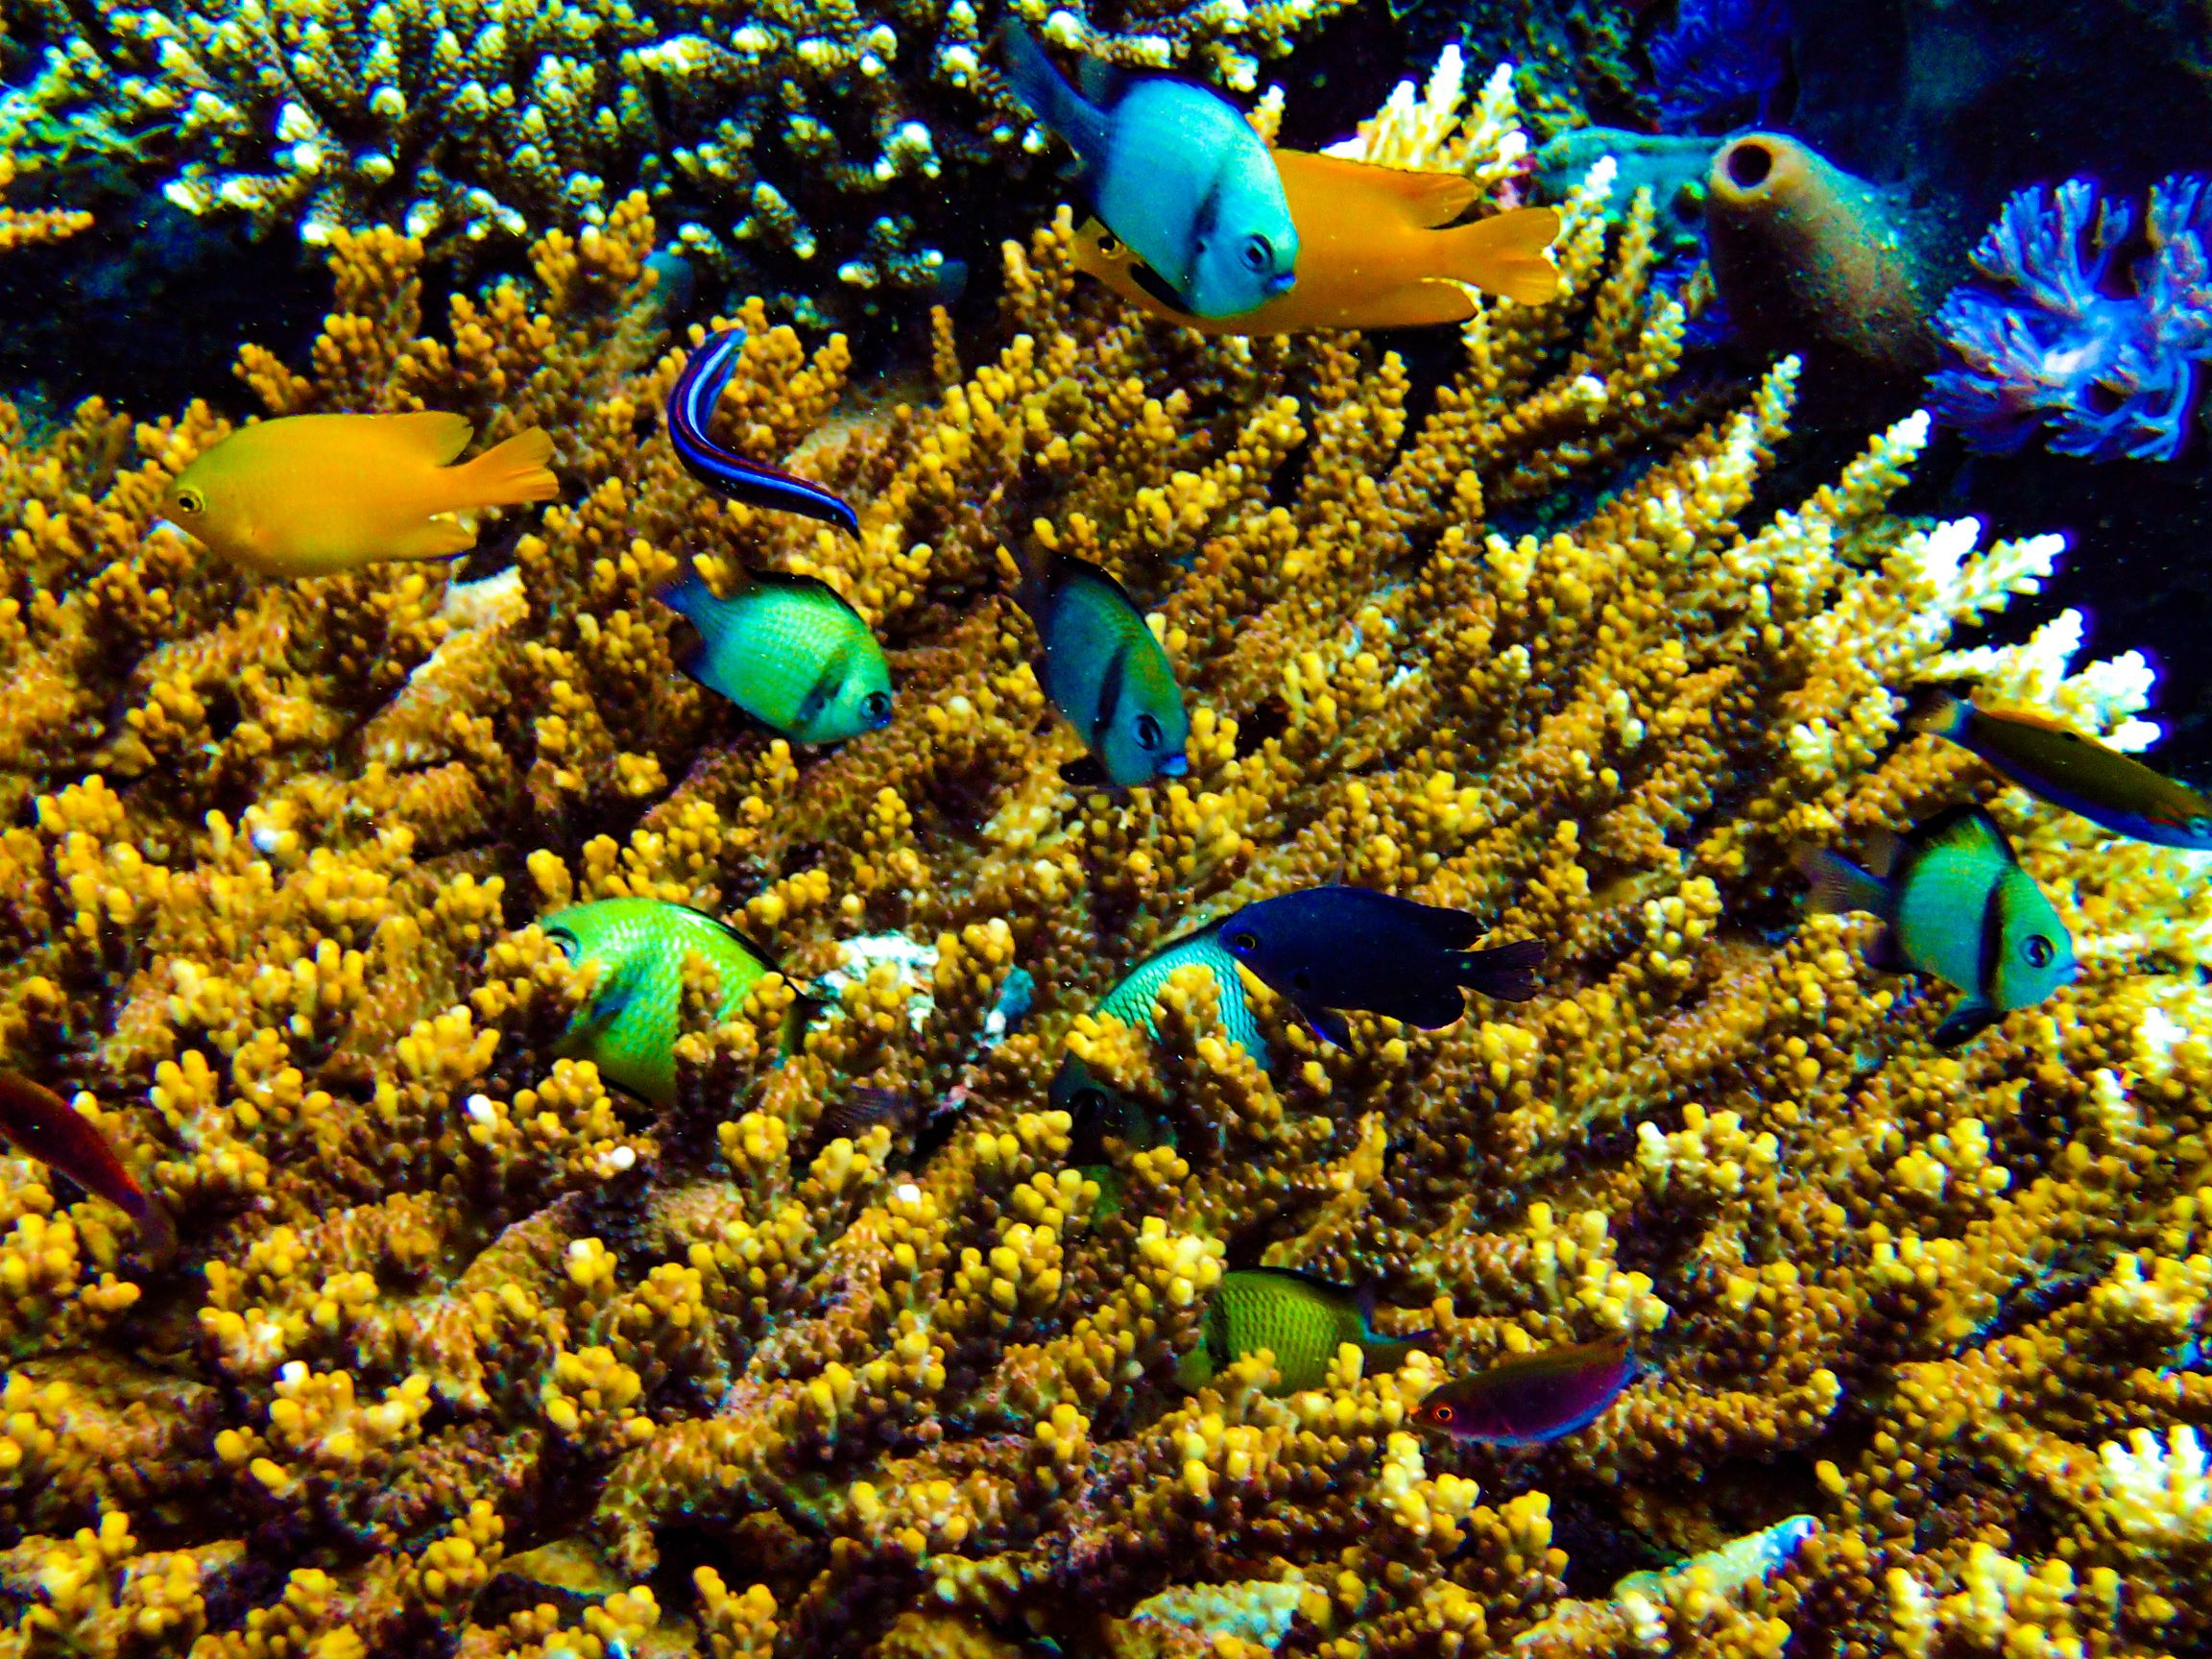 Numerous colorful tropical reef fishes swimming about colorful coral formations in Puerto Galera, Occidental Mindoro, Philippines